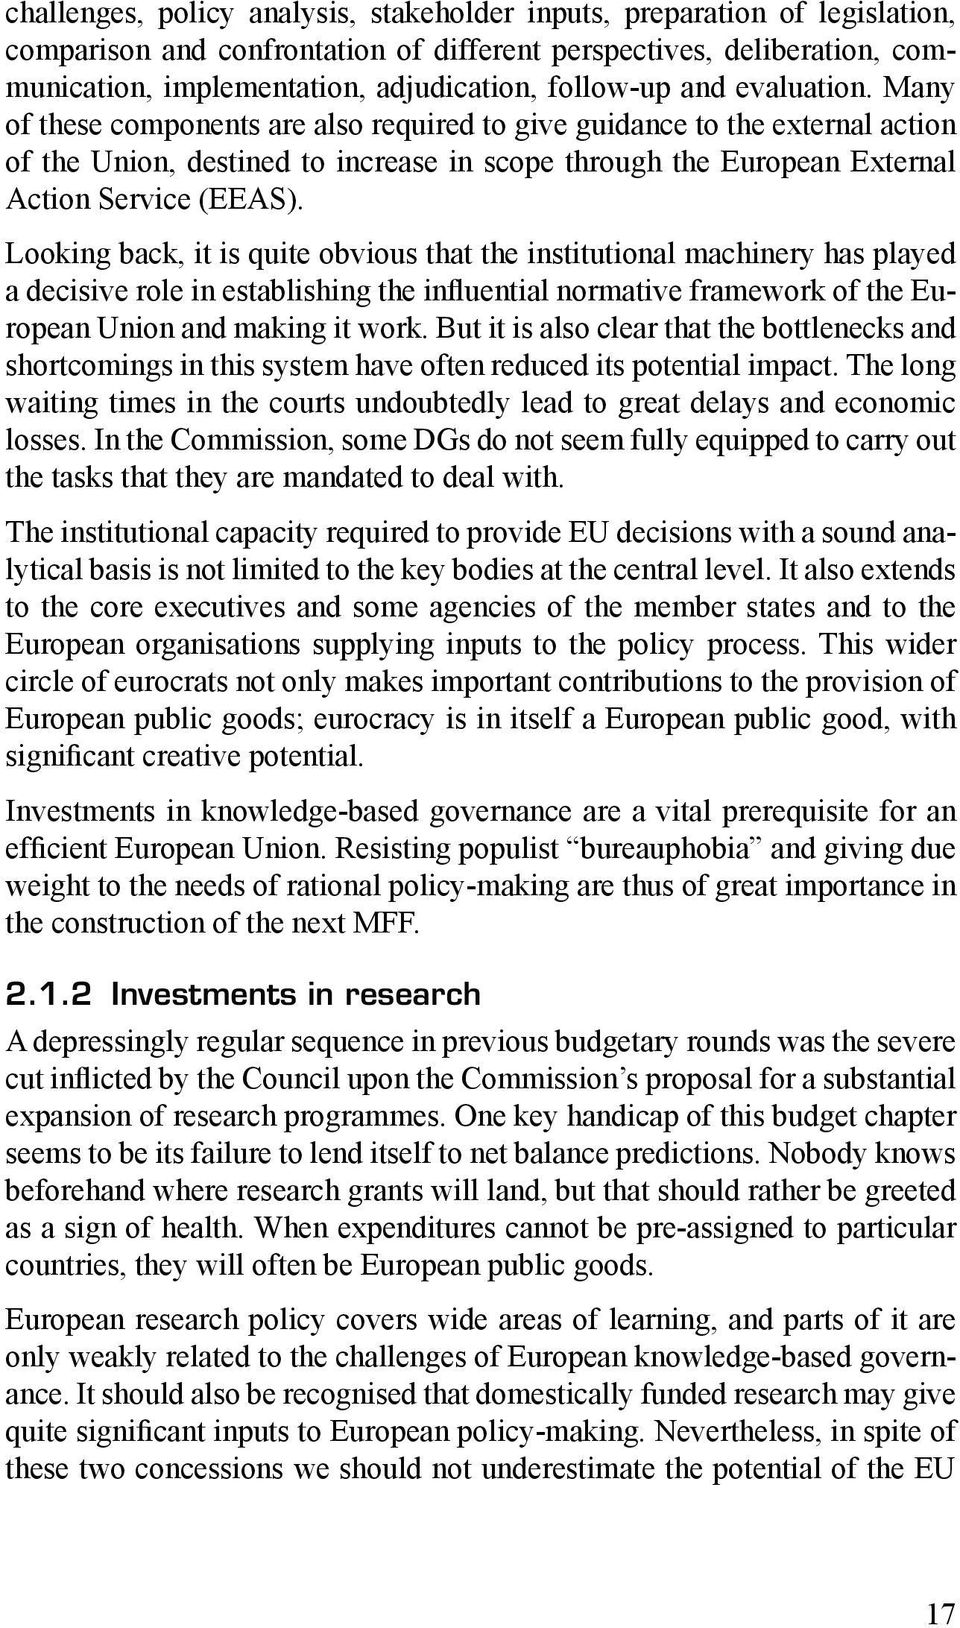 Many of these components are also required to give guidance to the external action of the Union, destined to increase in scope through the European External Action Service (EEAS).